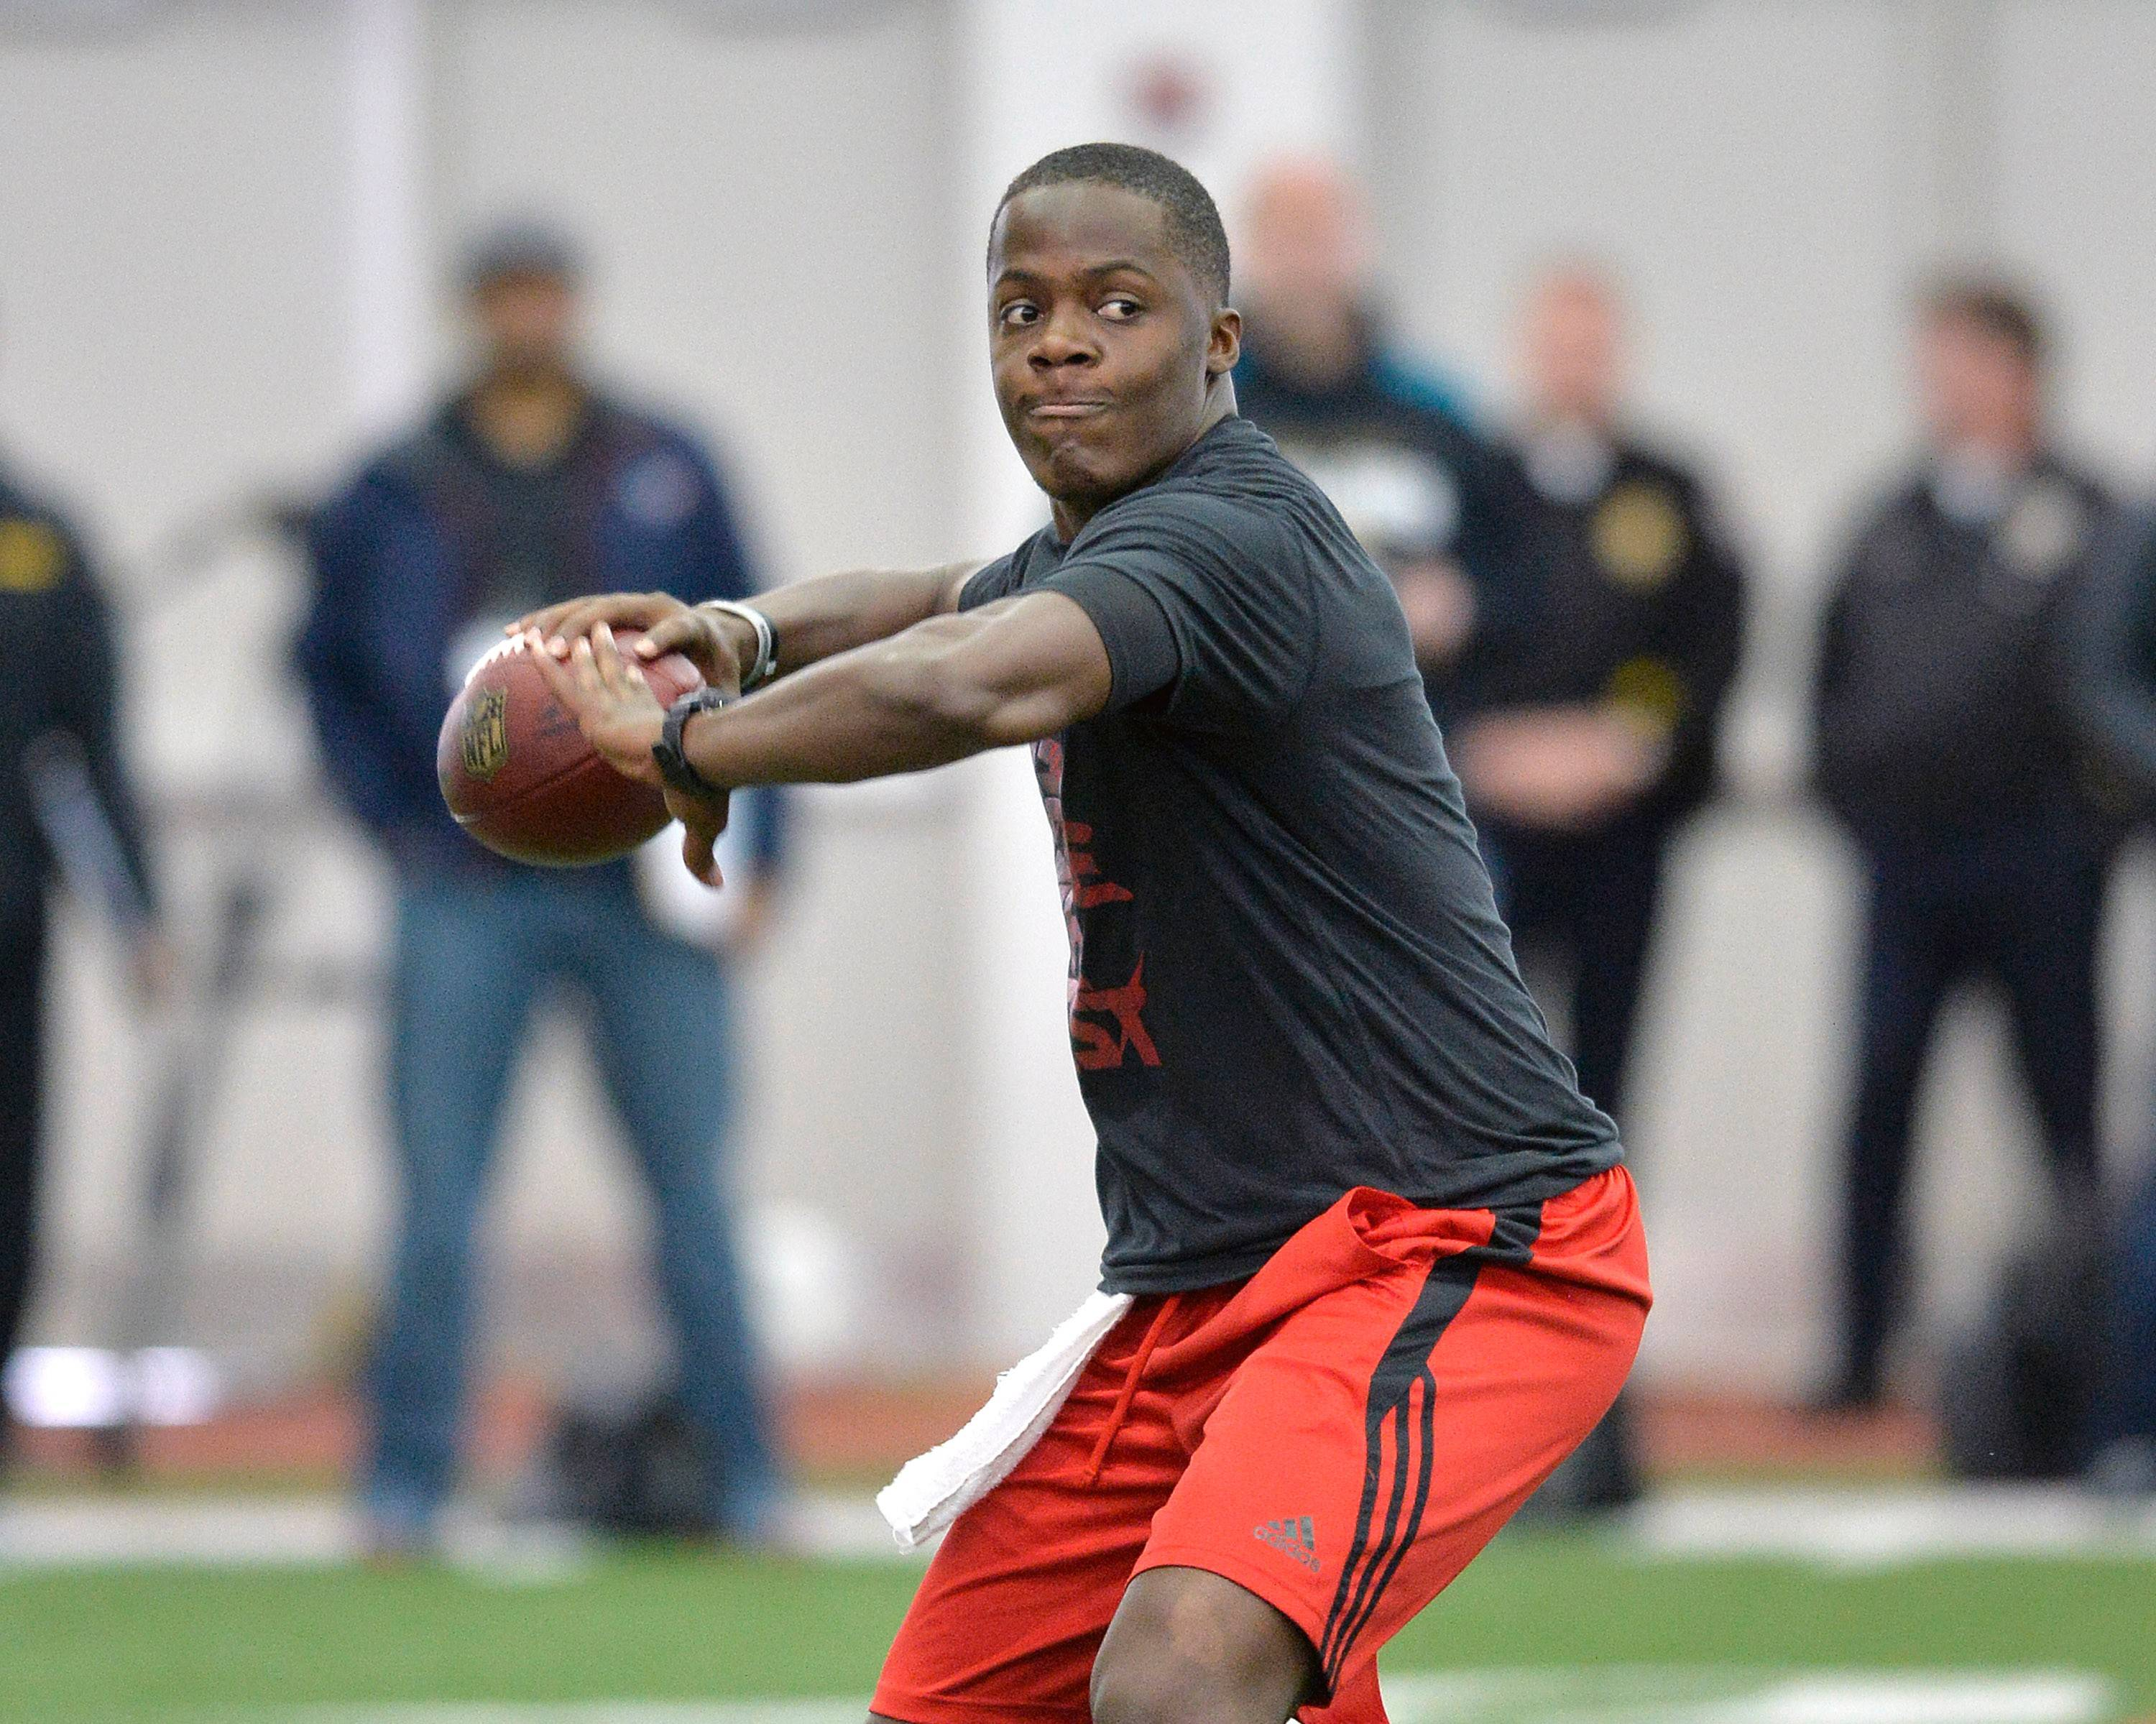 Louisville quarterback Teddy Bridgewater (6-2⅛, 214). Bob LeGere's quick take: Lacks some arm strength and bulk, but he's a gamer who is physically and mentally tough.